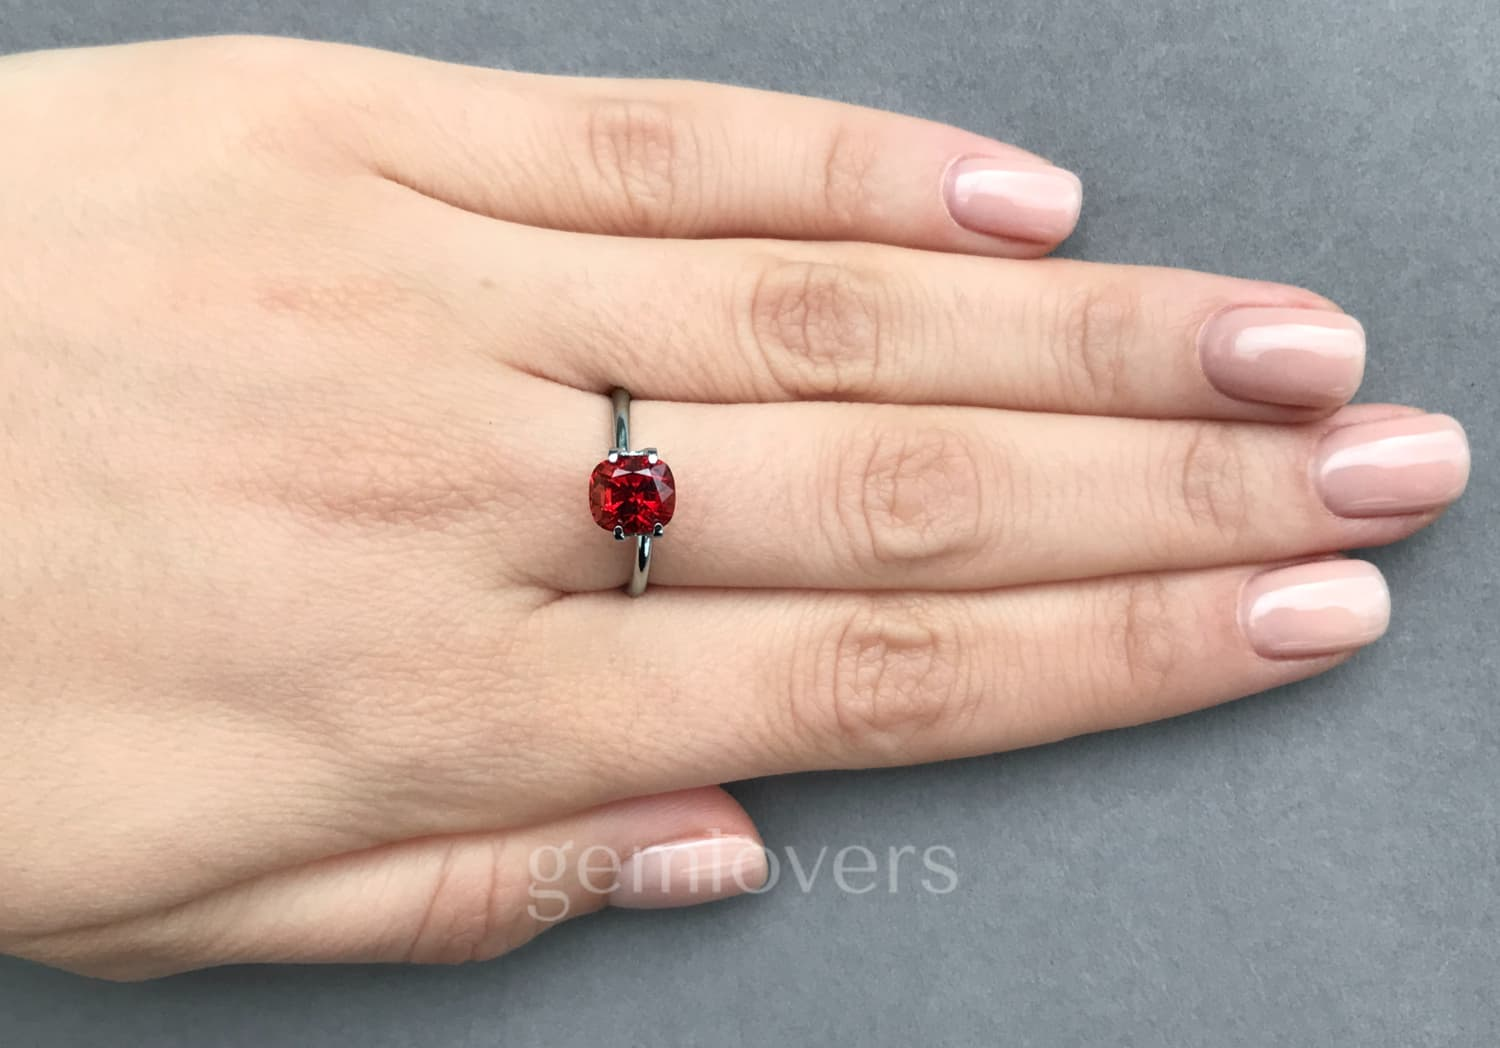 Burmese bright red spinel ring